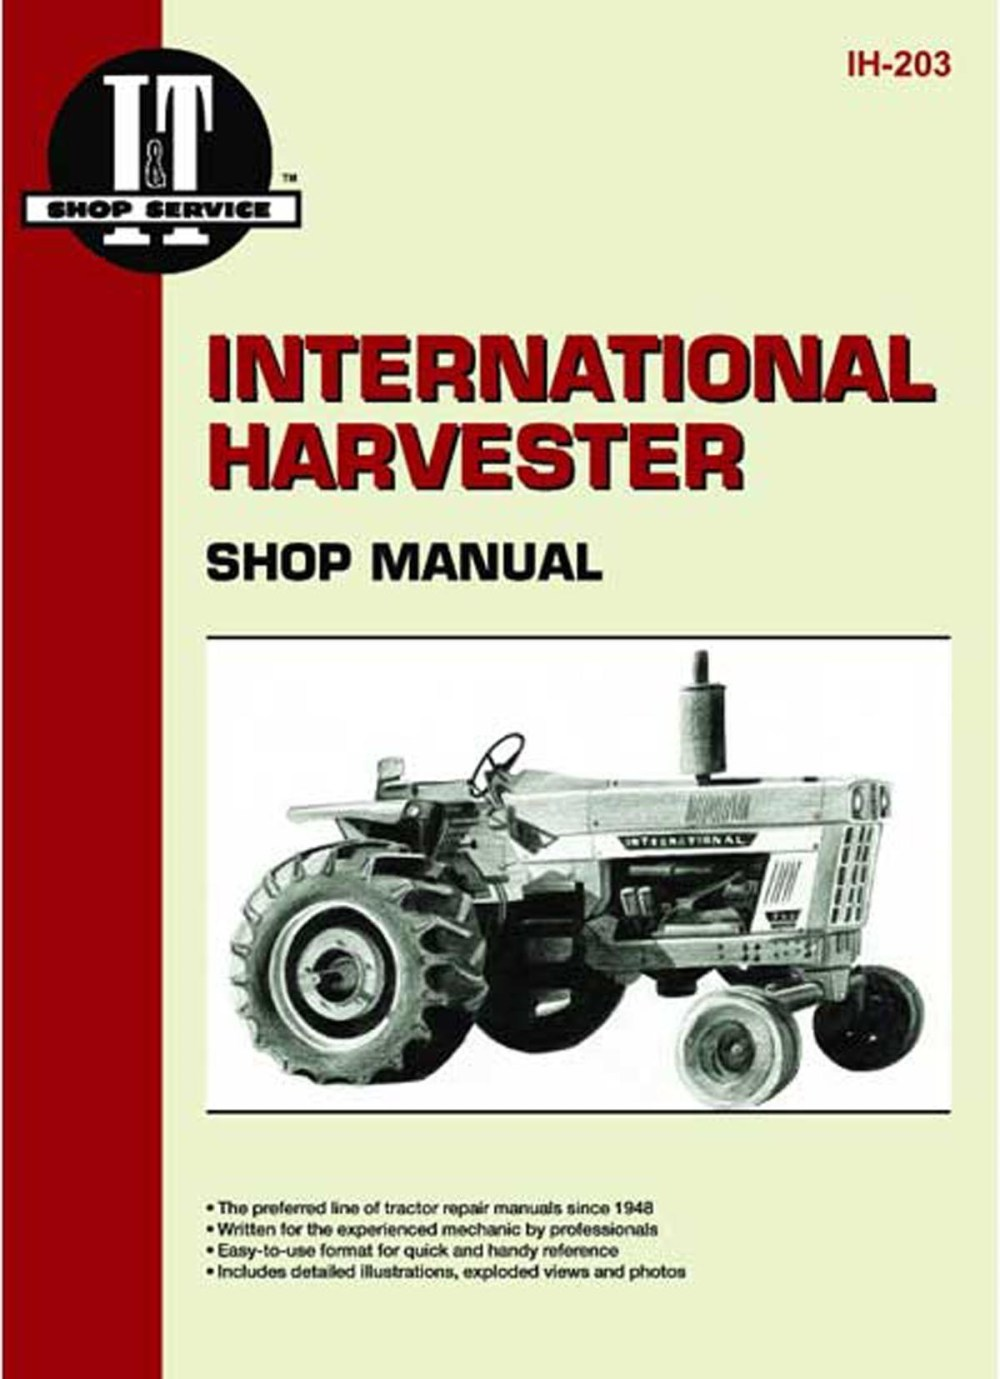 medium resolution of i t shop service manual case ih parts case ih tractor parts case 580 backhoe case tractor parts diagrams wiring